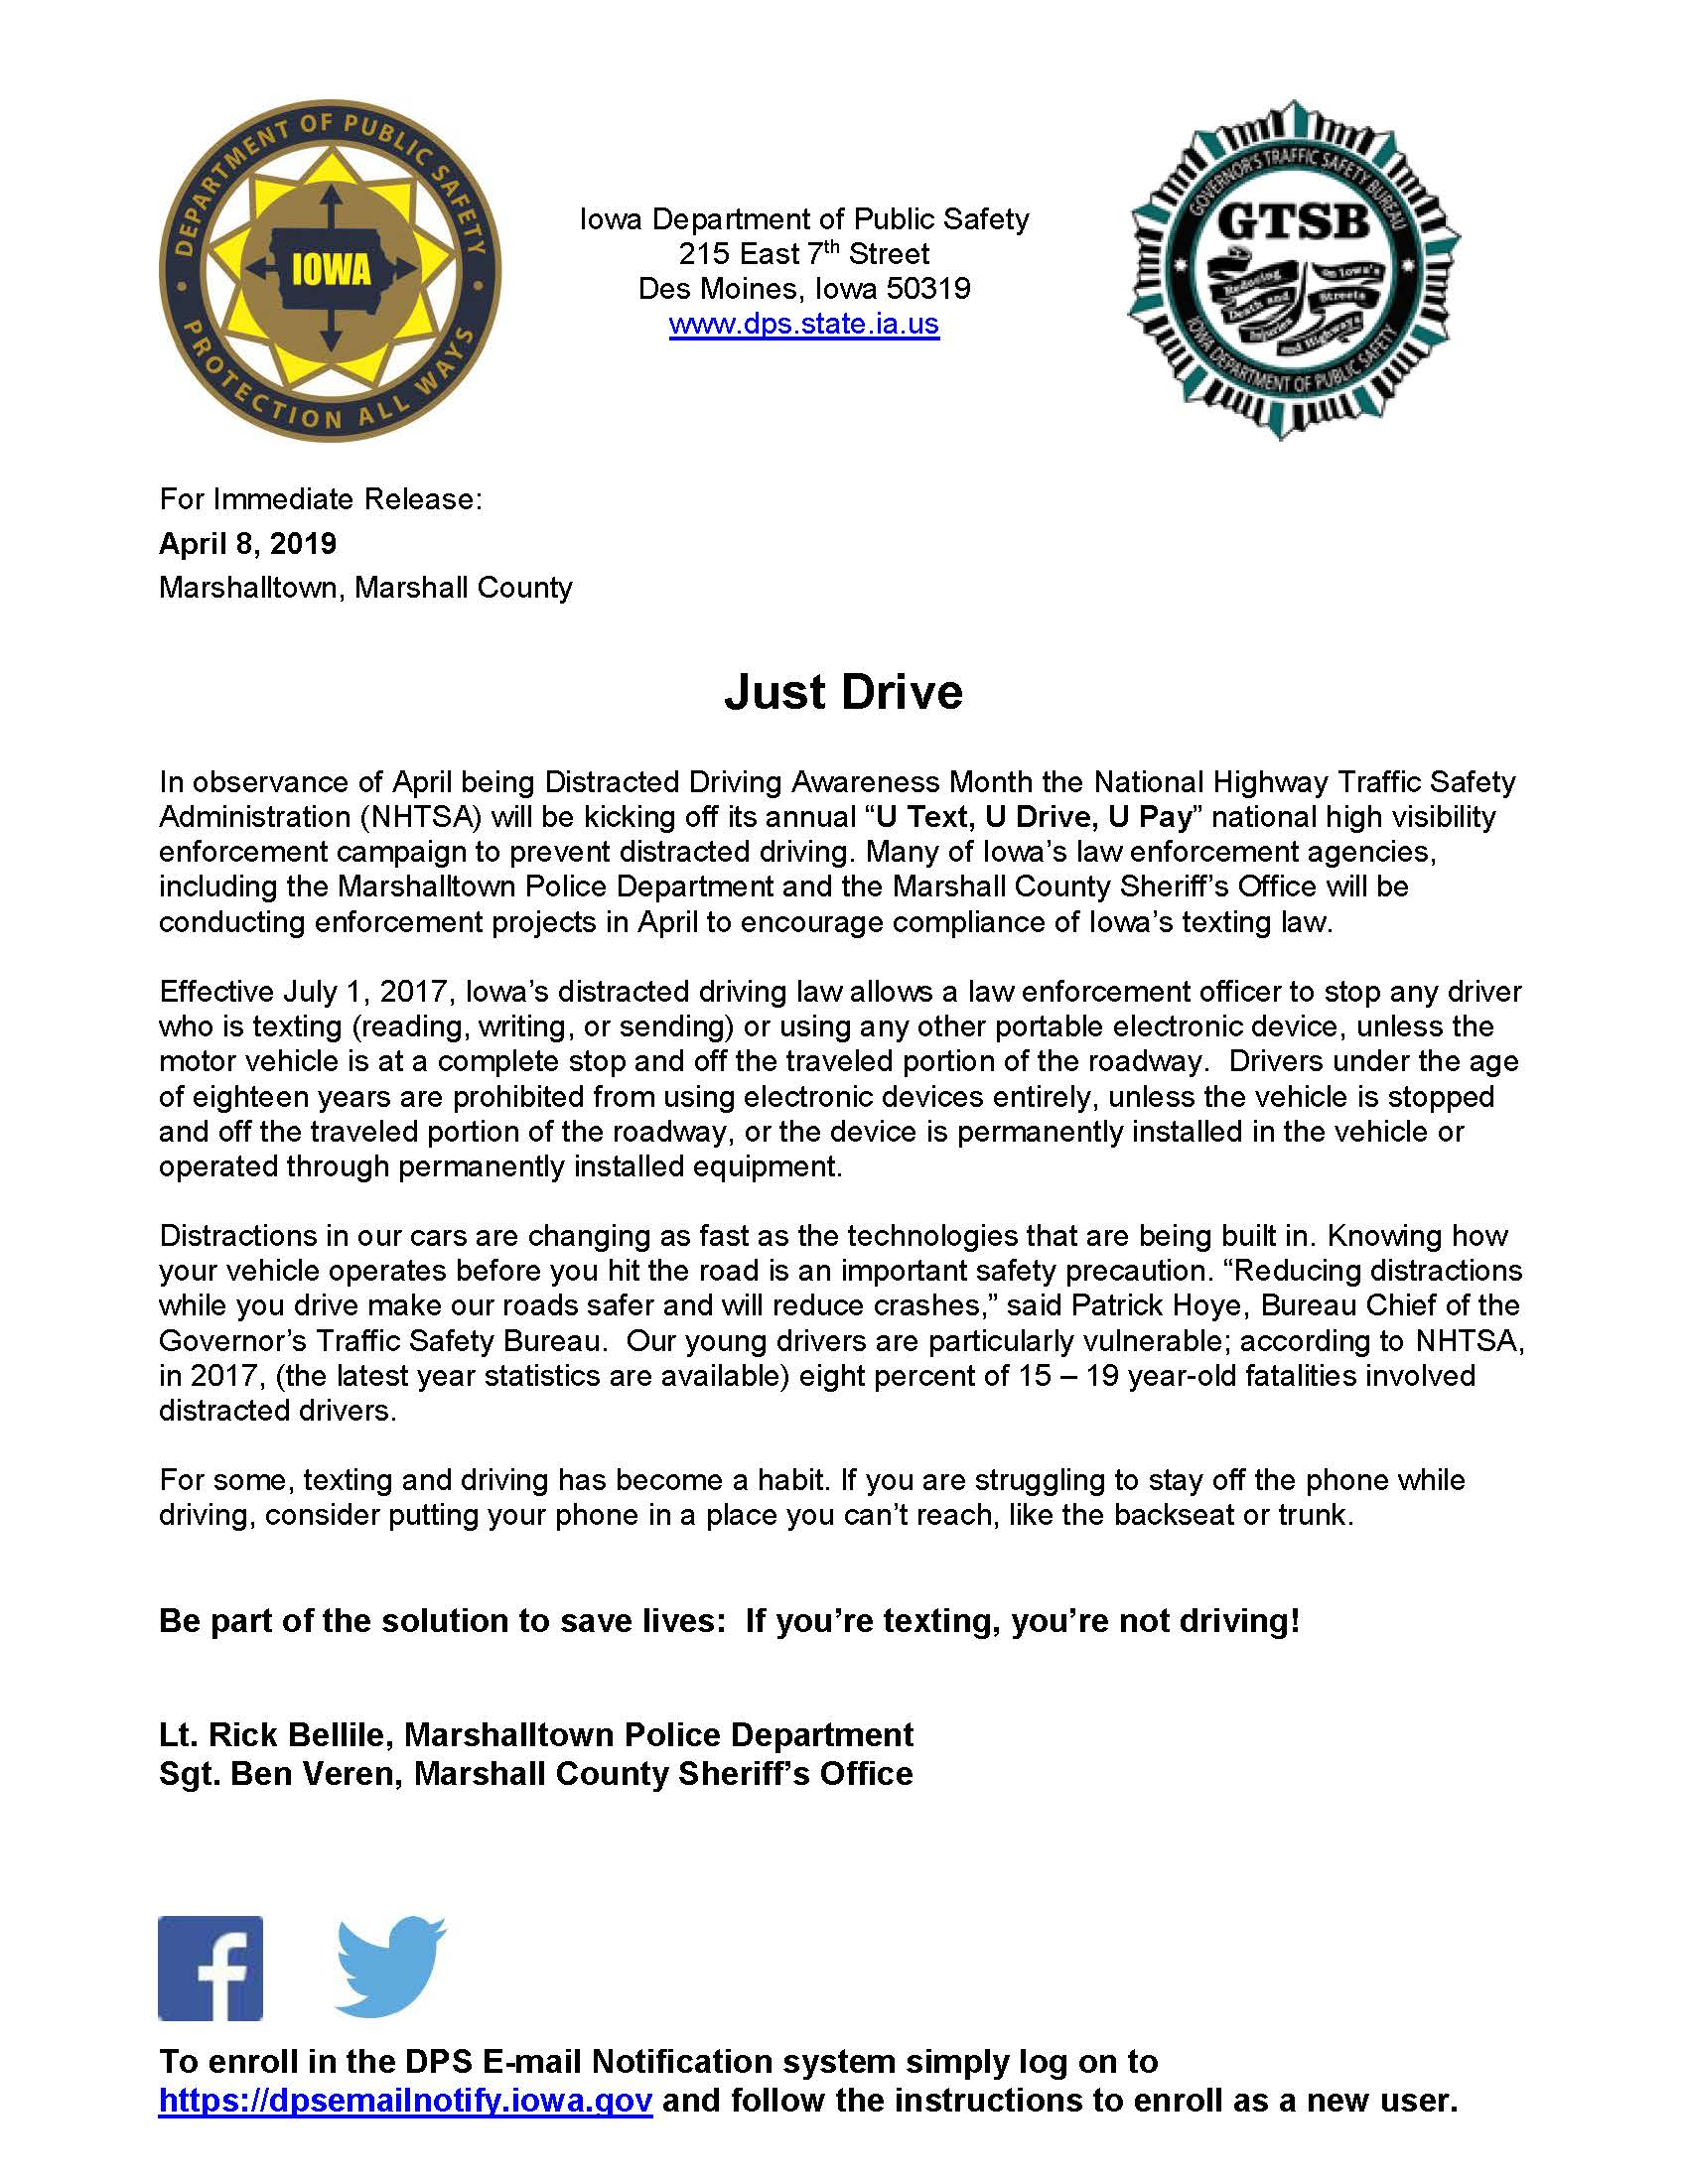 Media Release-Distracted Driving